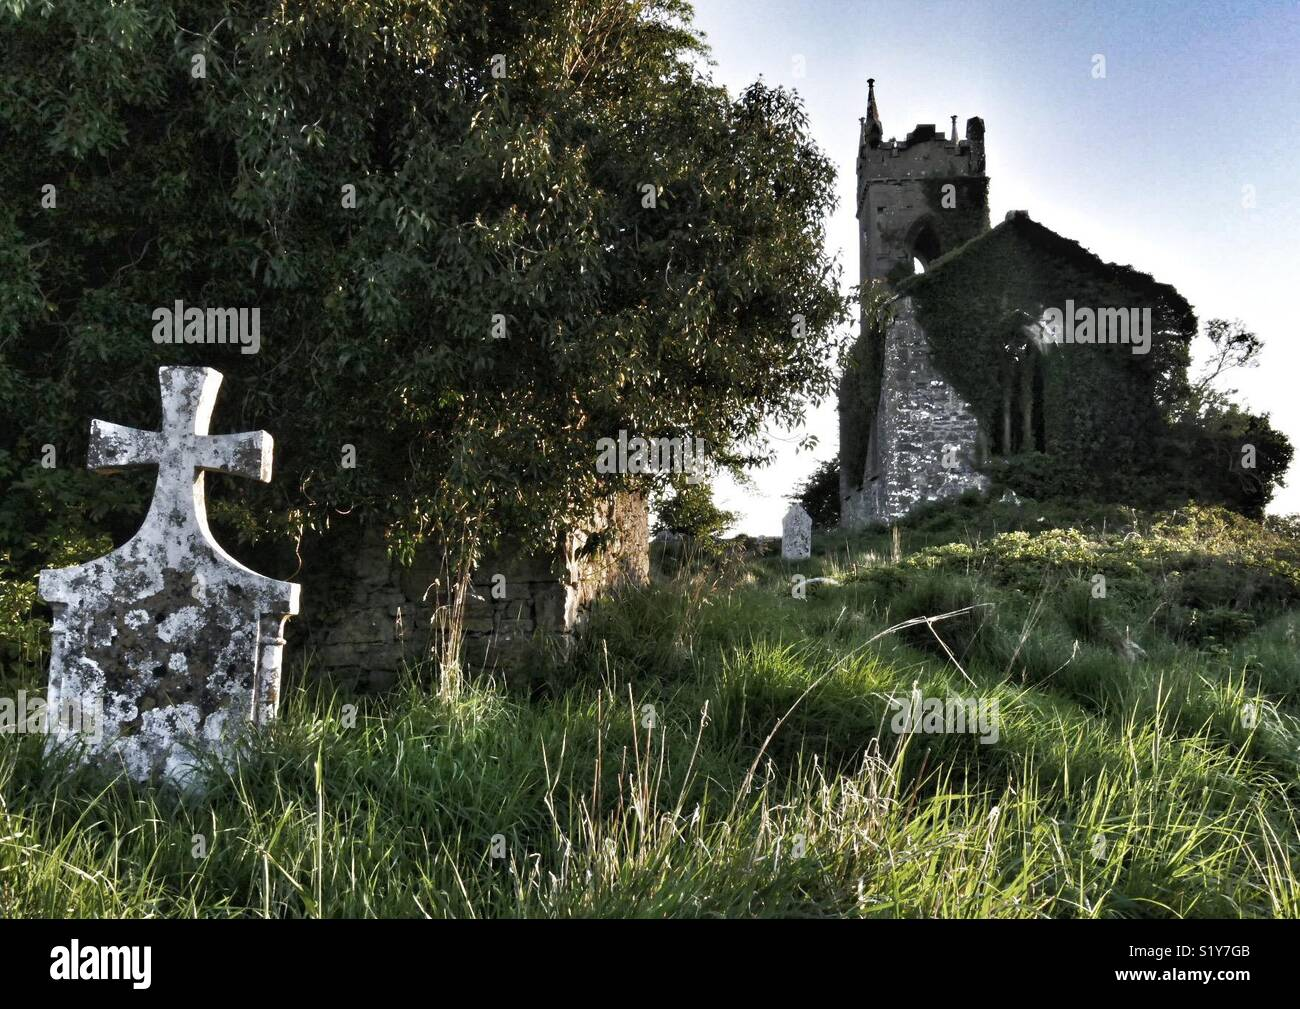 Derelict church and gravestones, Ballymore, Eire, Europe. Stock Photo